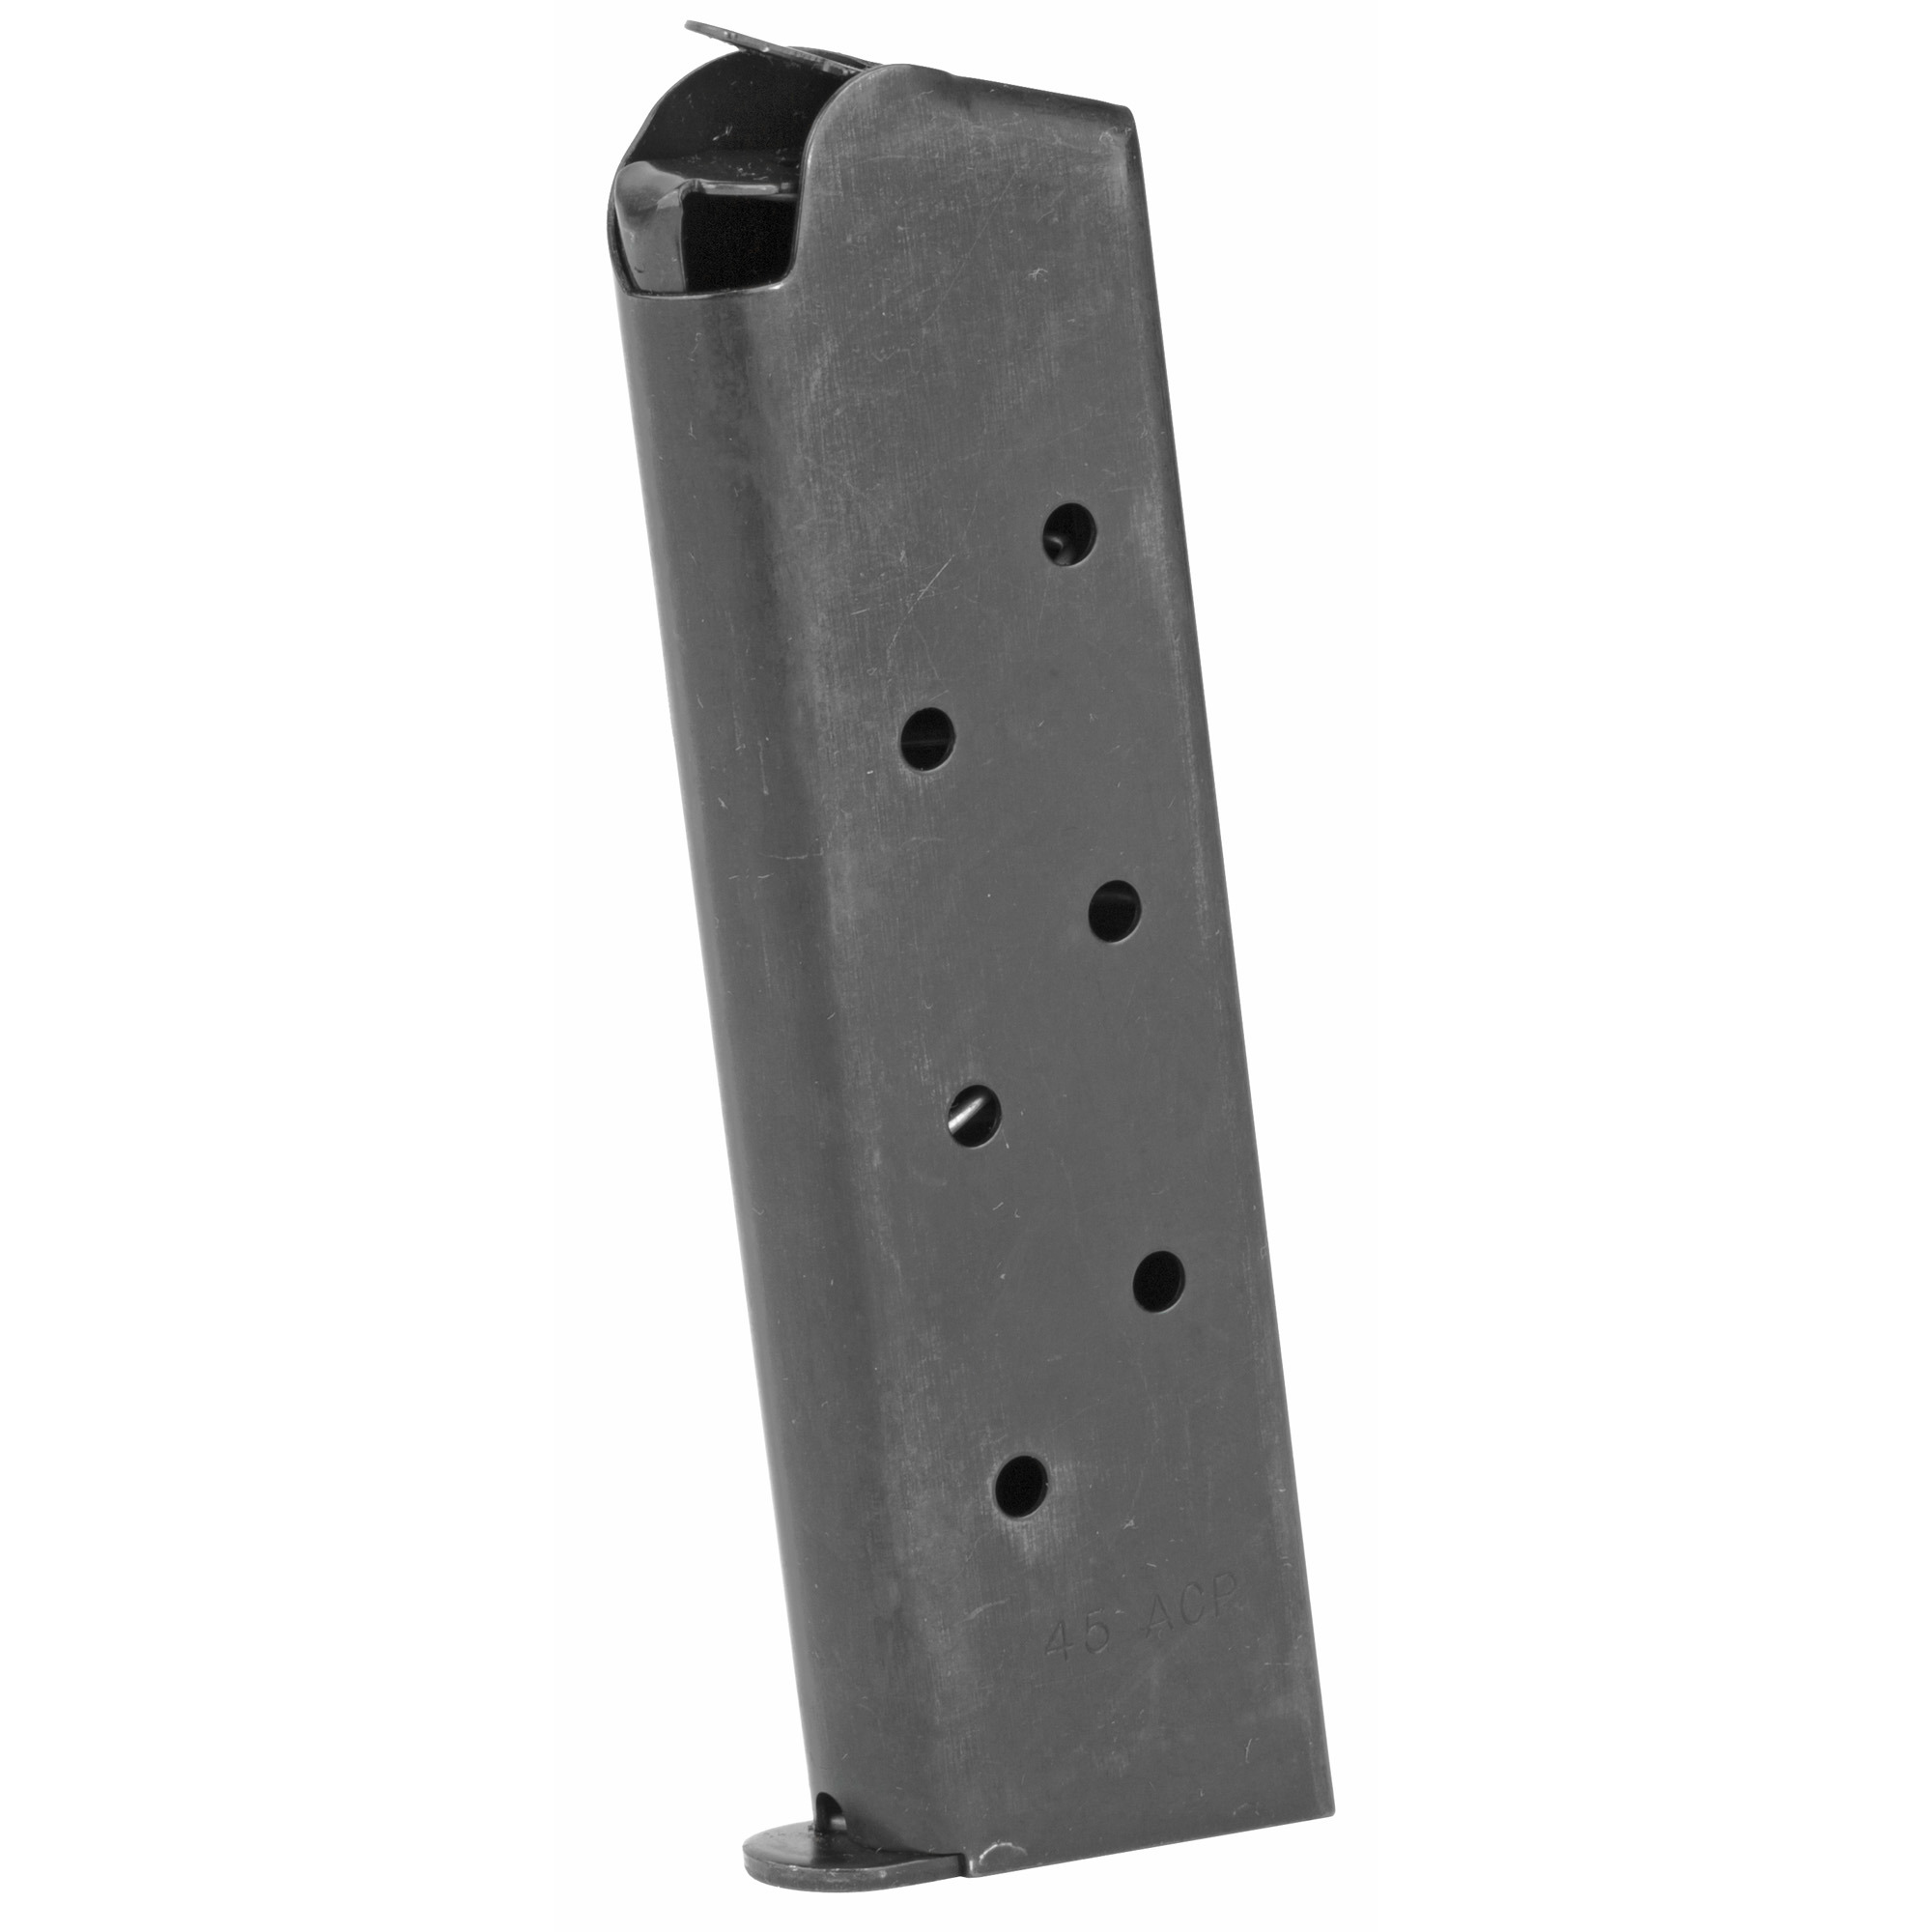 This is a standard Colt factory replacement magazine made to Colt specifications and tolerances. High quality materials and precise manufacturing make Colt magazines the choice for total reliability.